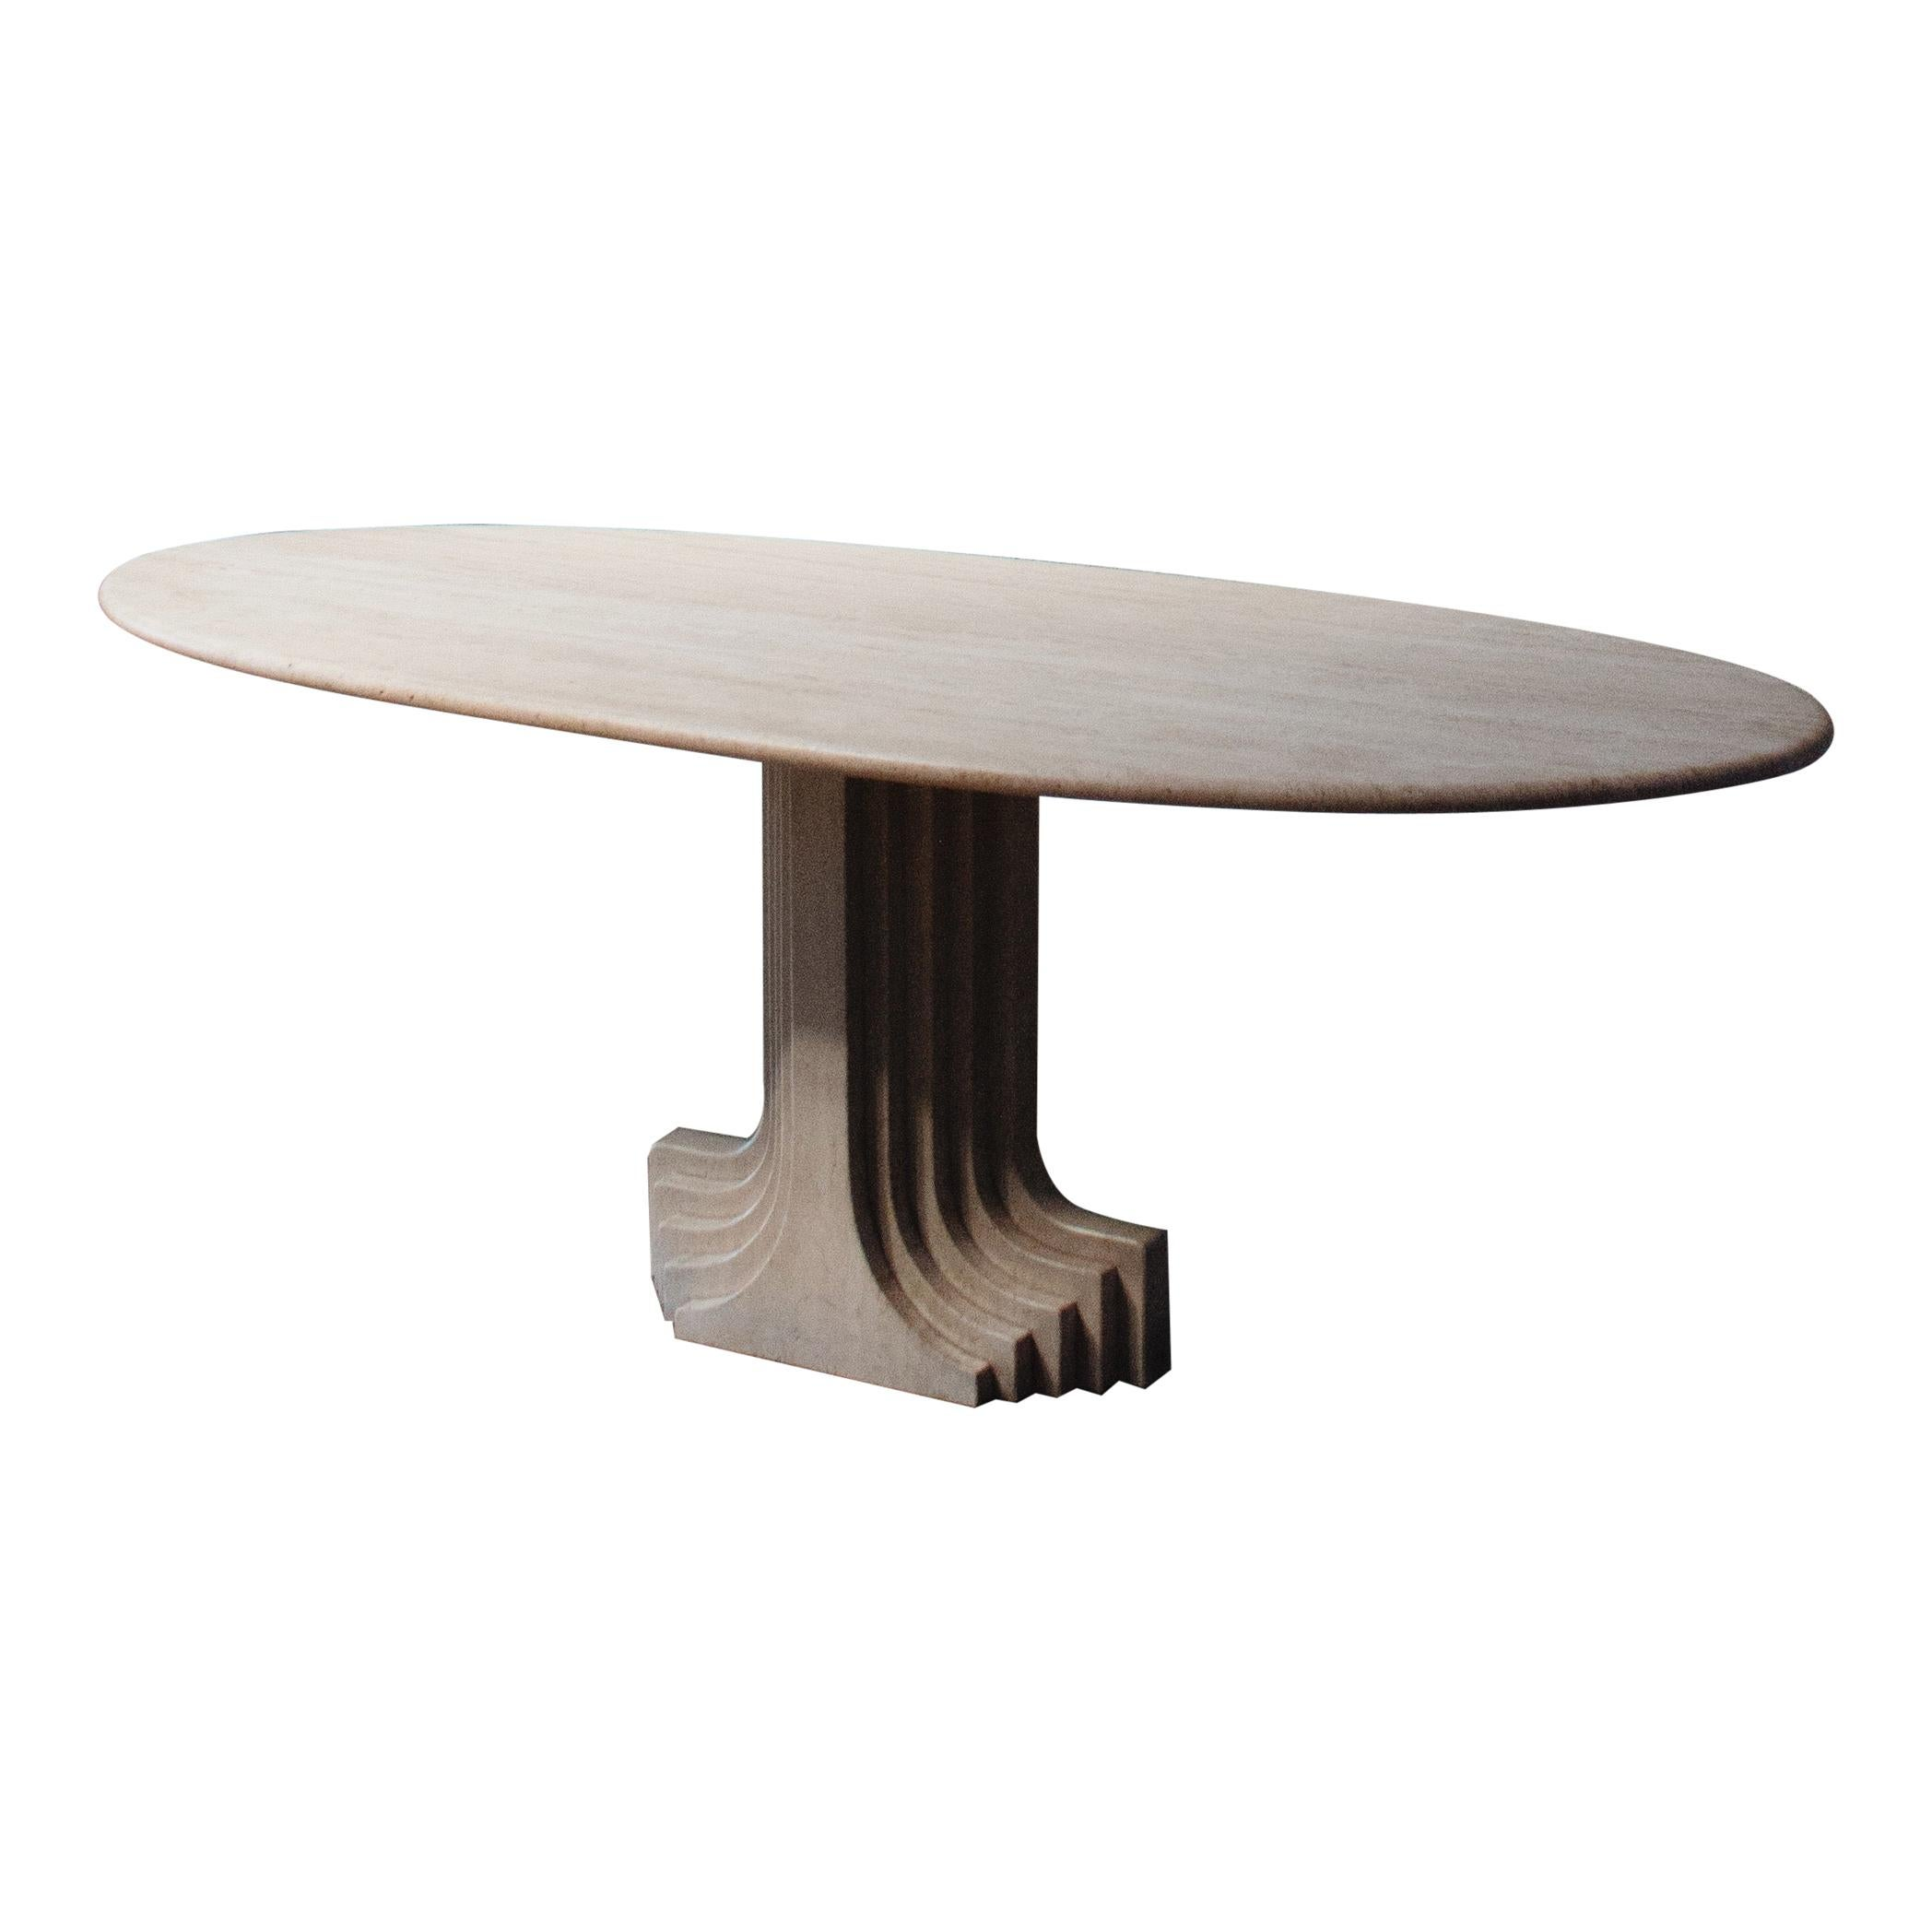 "Carlo Scarpa ""Argo"" Oval Table for Simon, 1975"